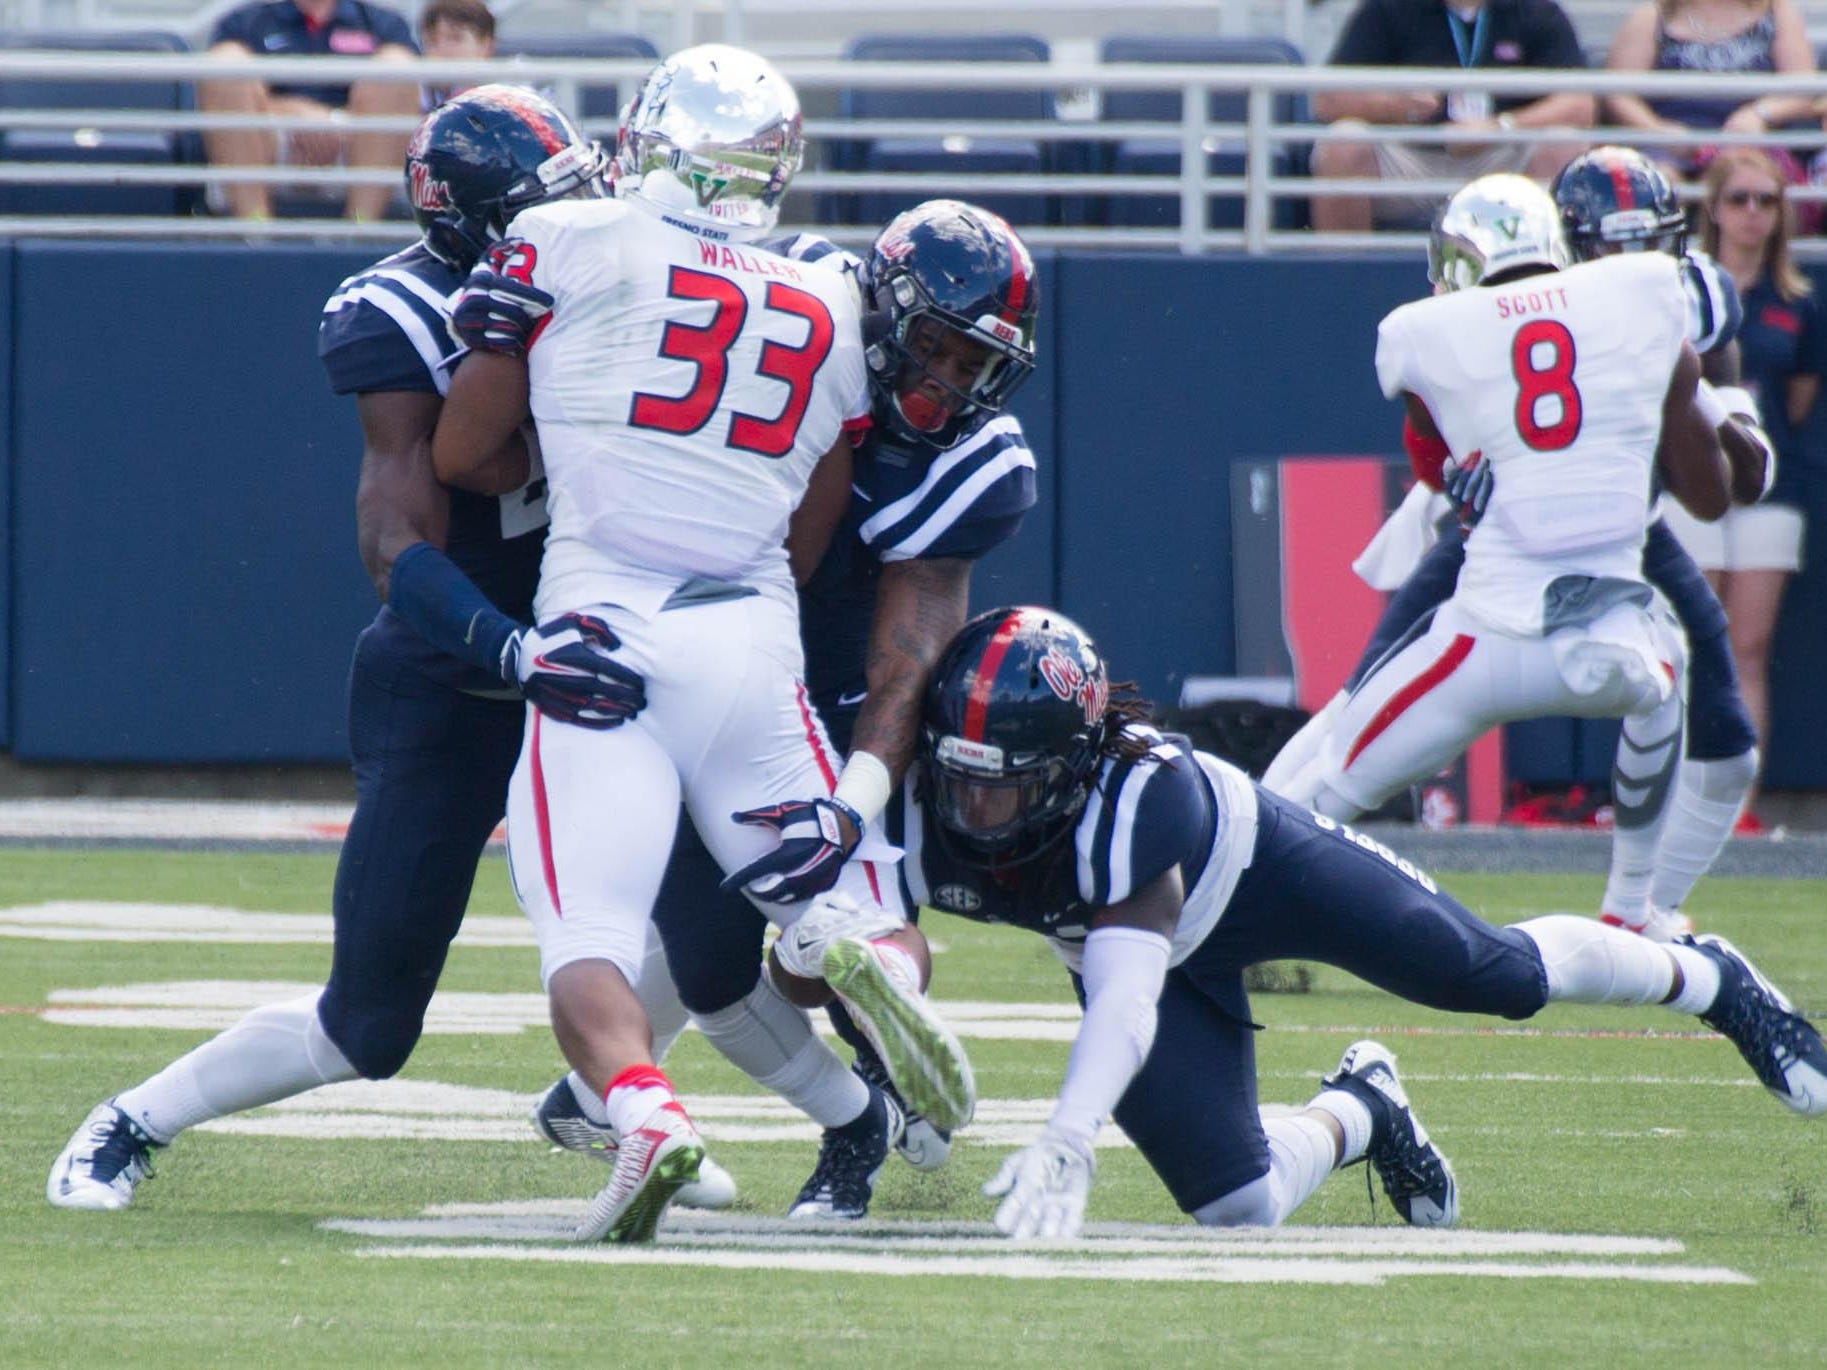 Ole Miss defensive backs Trae Elston, Channing Ward, and Maquis Haynes stop Fresno State's Marteze Waller on third down in the red zone.